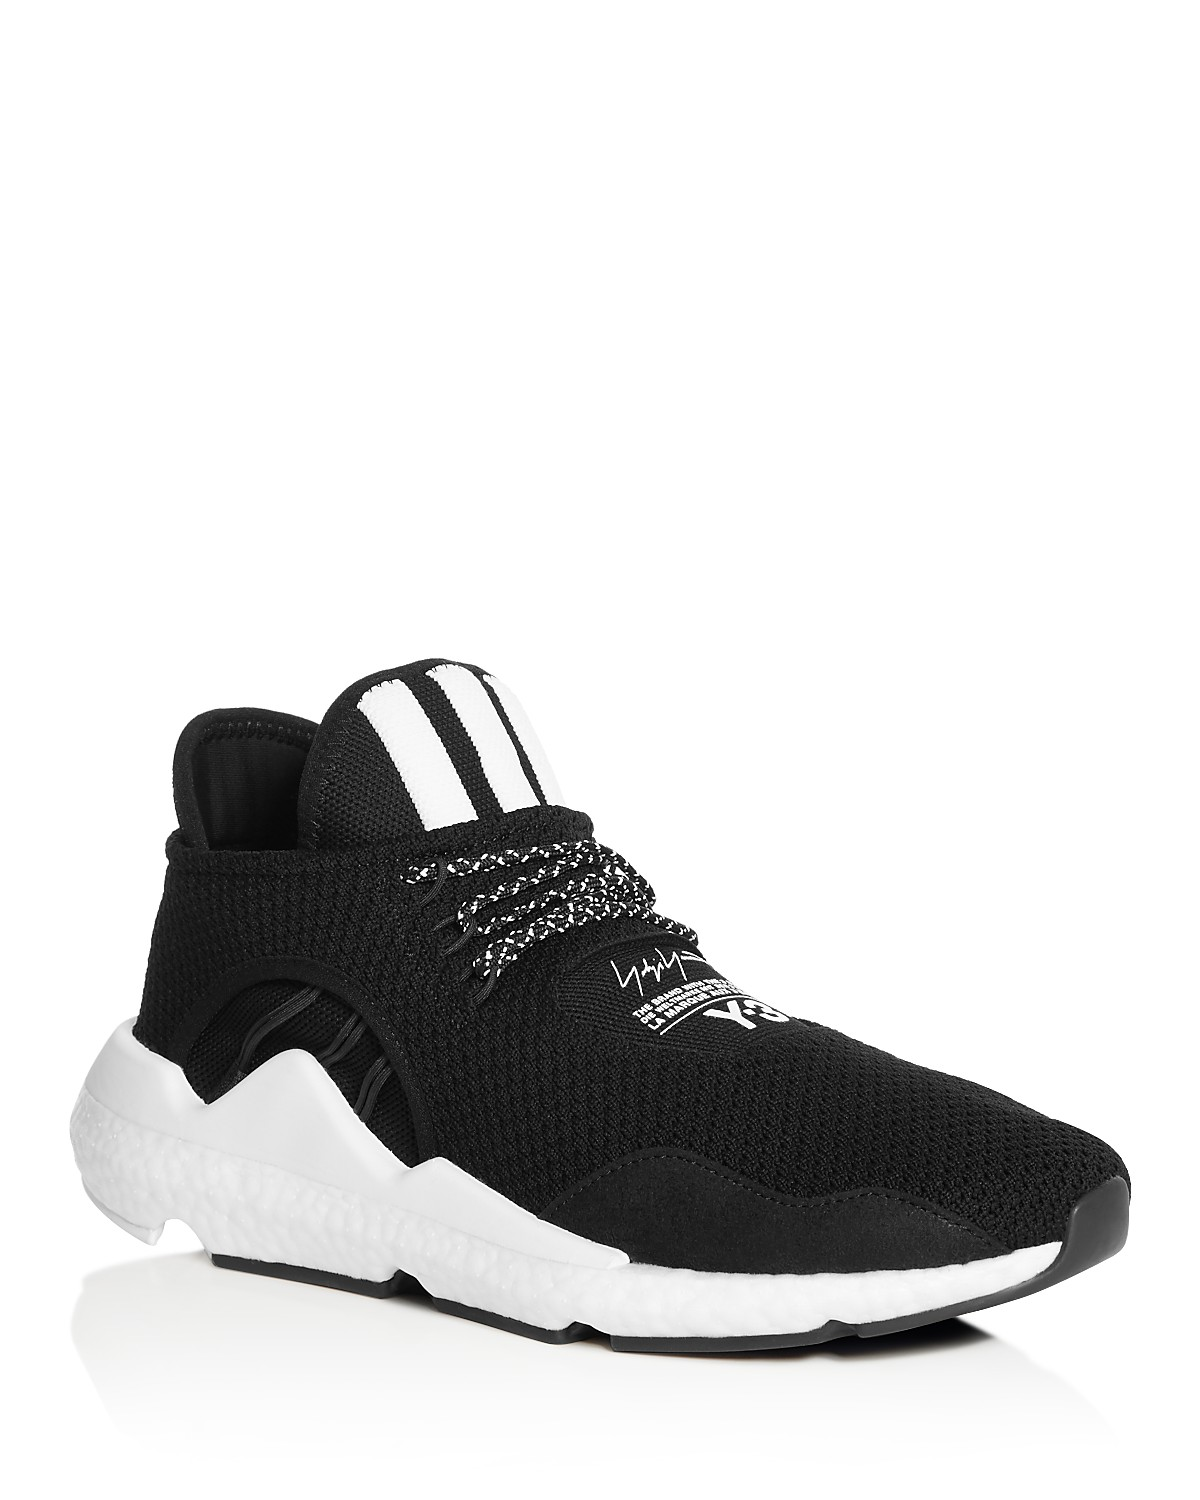 Y-3 Men's Saikou Primeknit Lace Up Sneakers 0RBO15A